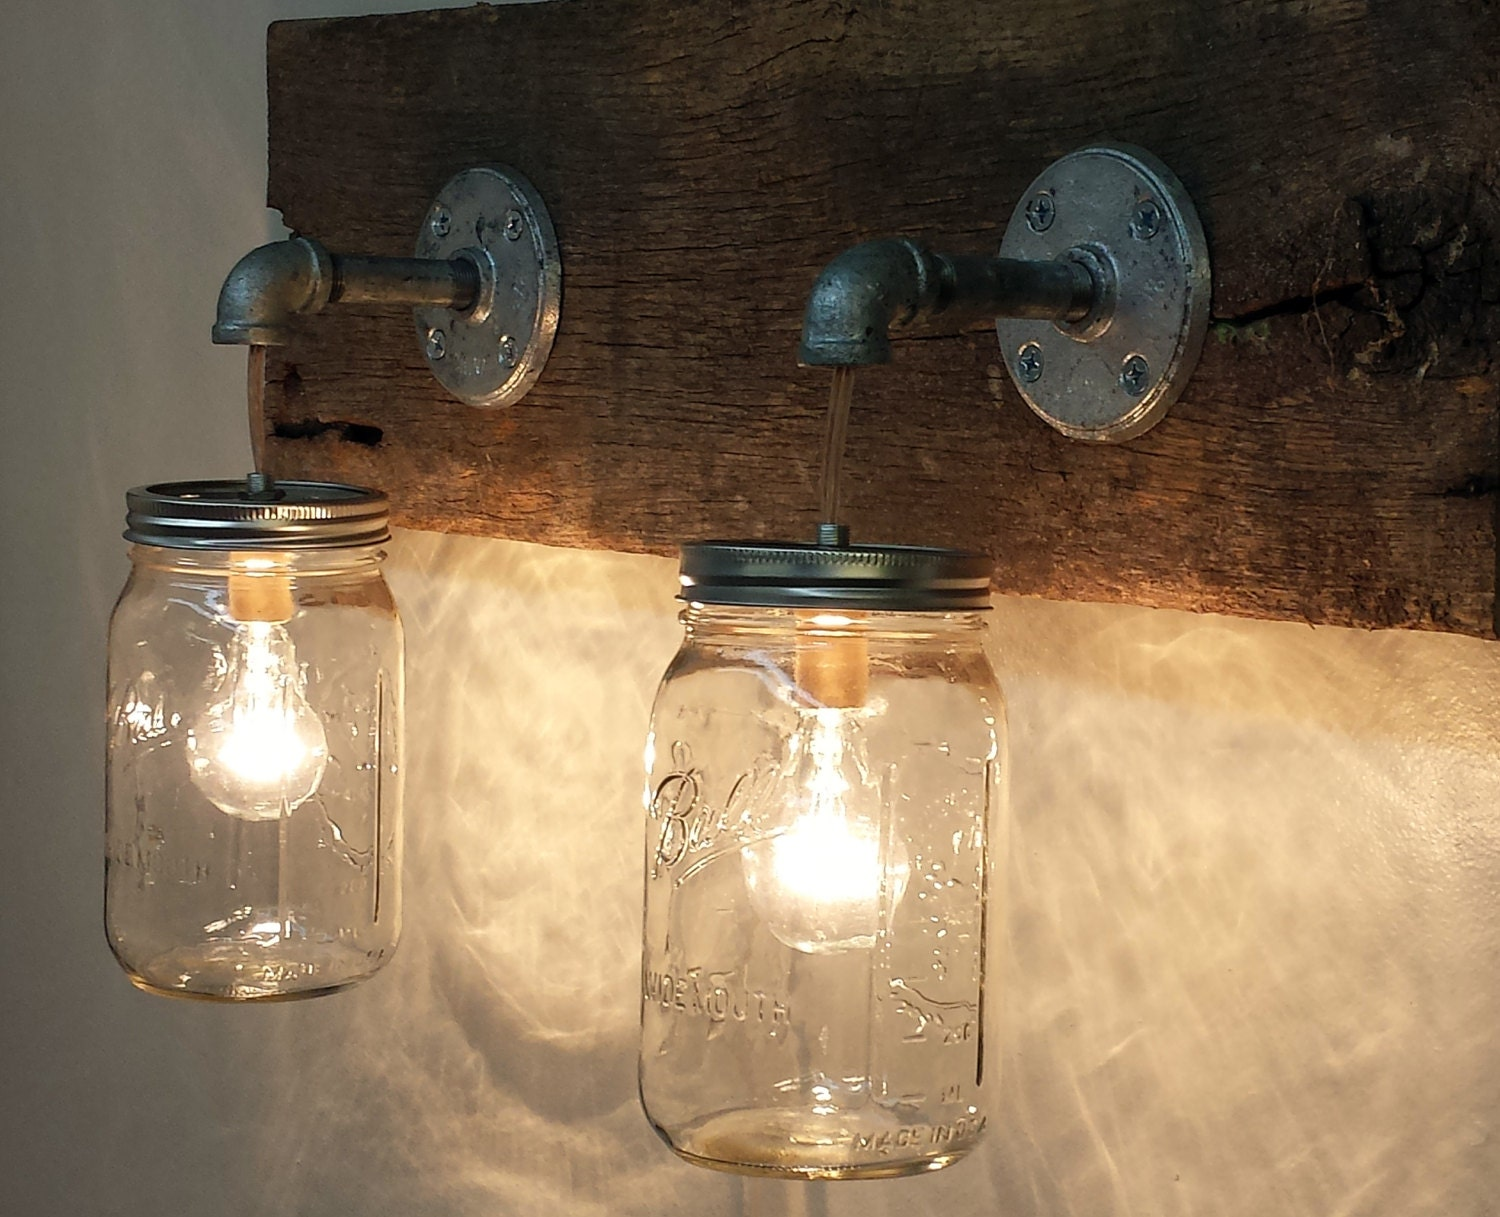 Hanging bathroom lights - Mason Jar 2 Light Fixture Rustic Reclaimed Barn Wood Mason Jar Hanging Light Fixture Industrial Made